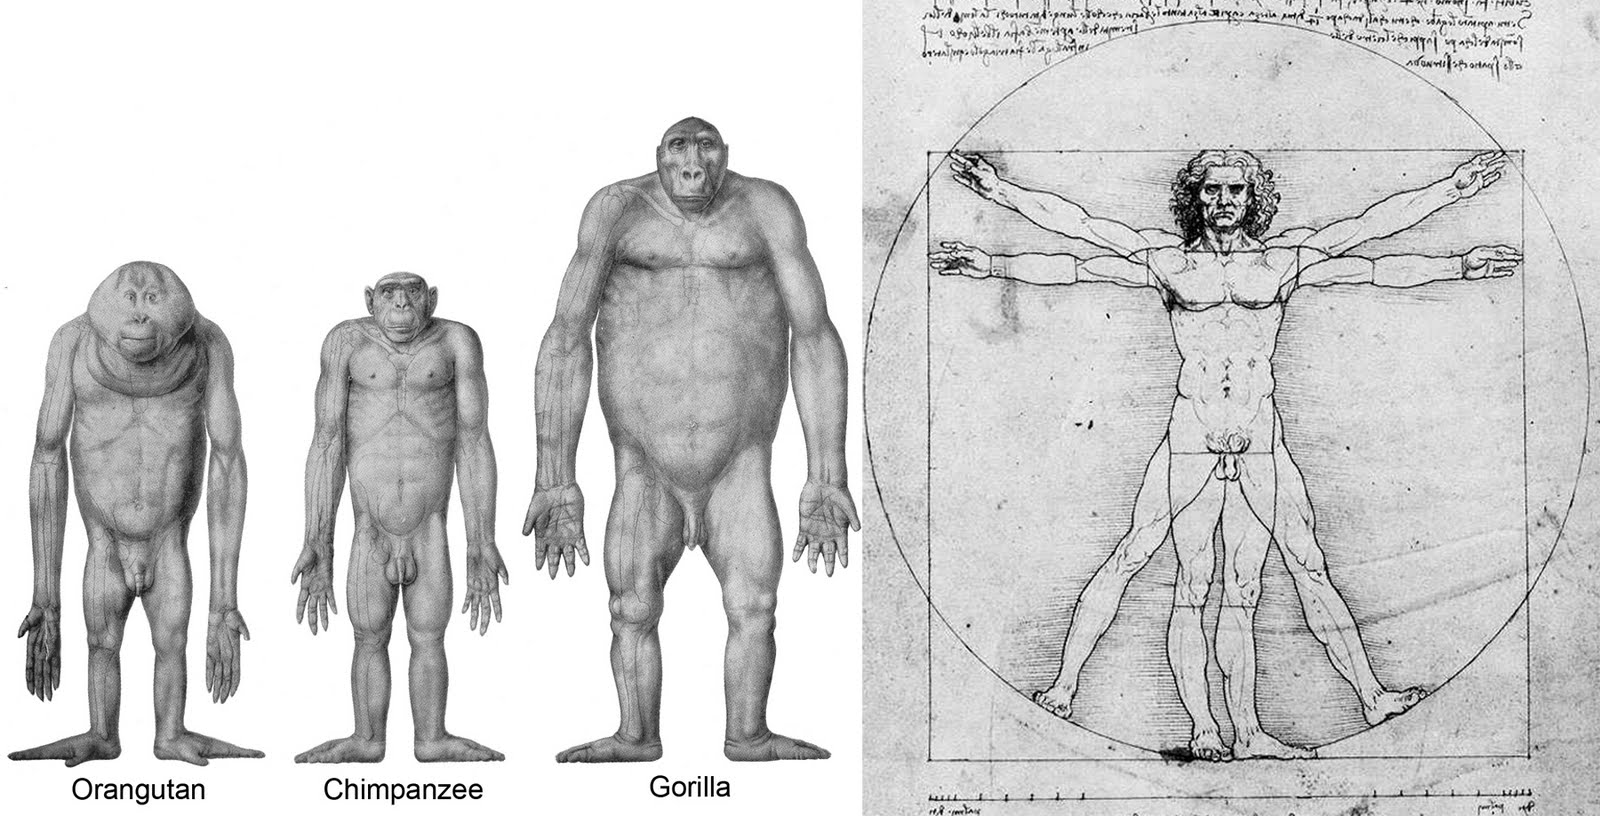 Composite of drawings by Adolph Schultz and DaVinci for Aaron Filler's concept of the 'four great hominiforms' explained in The Upright Ape by Aaron G. Filler.